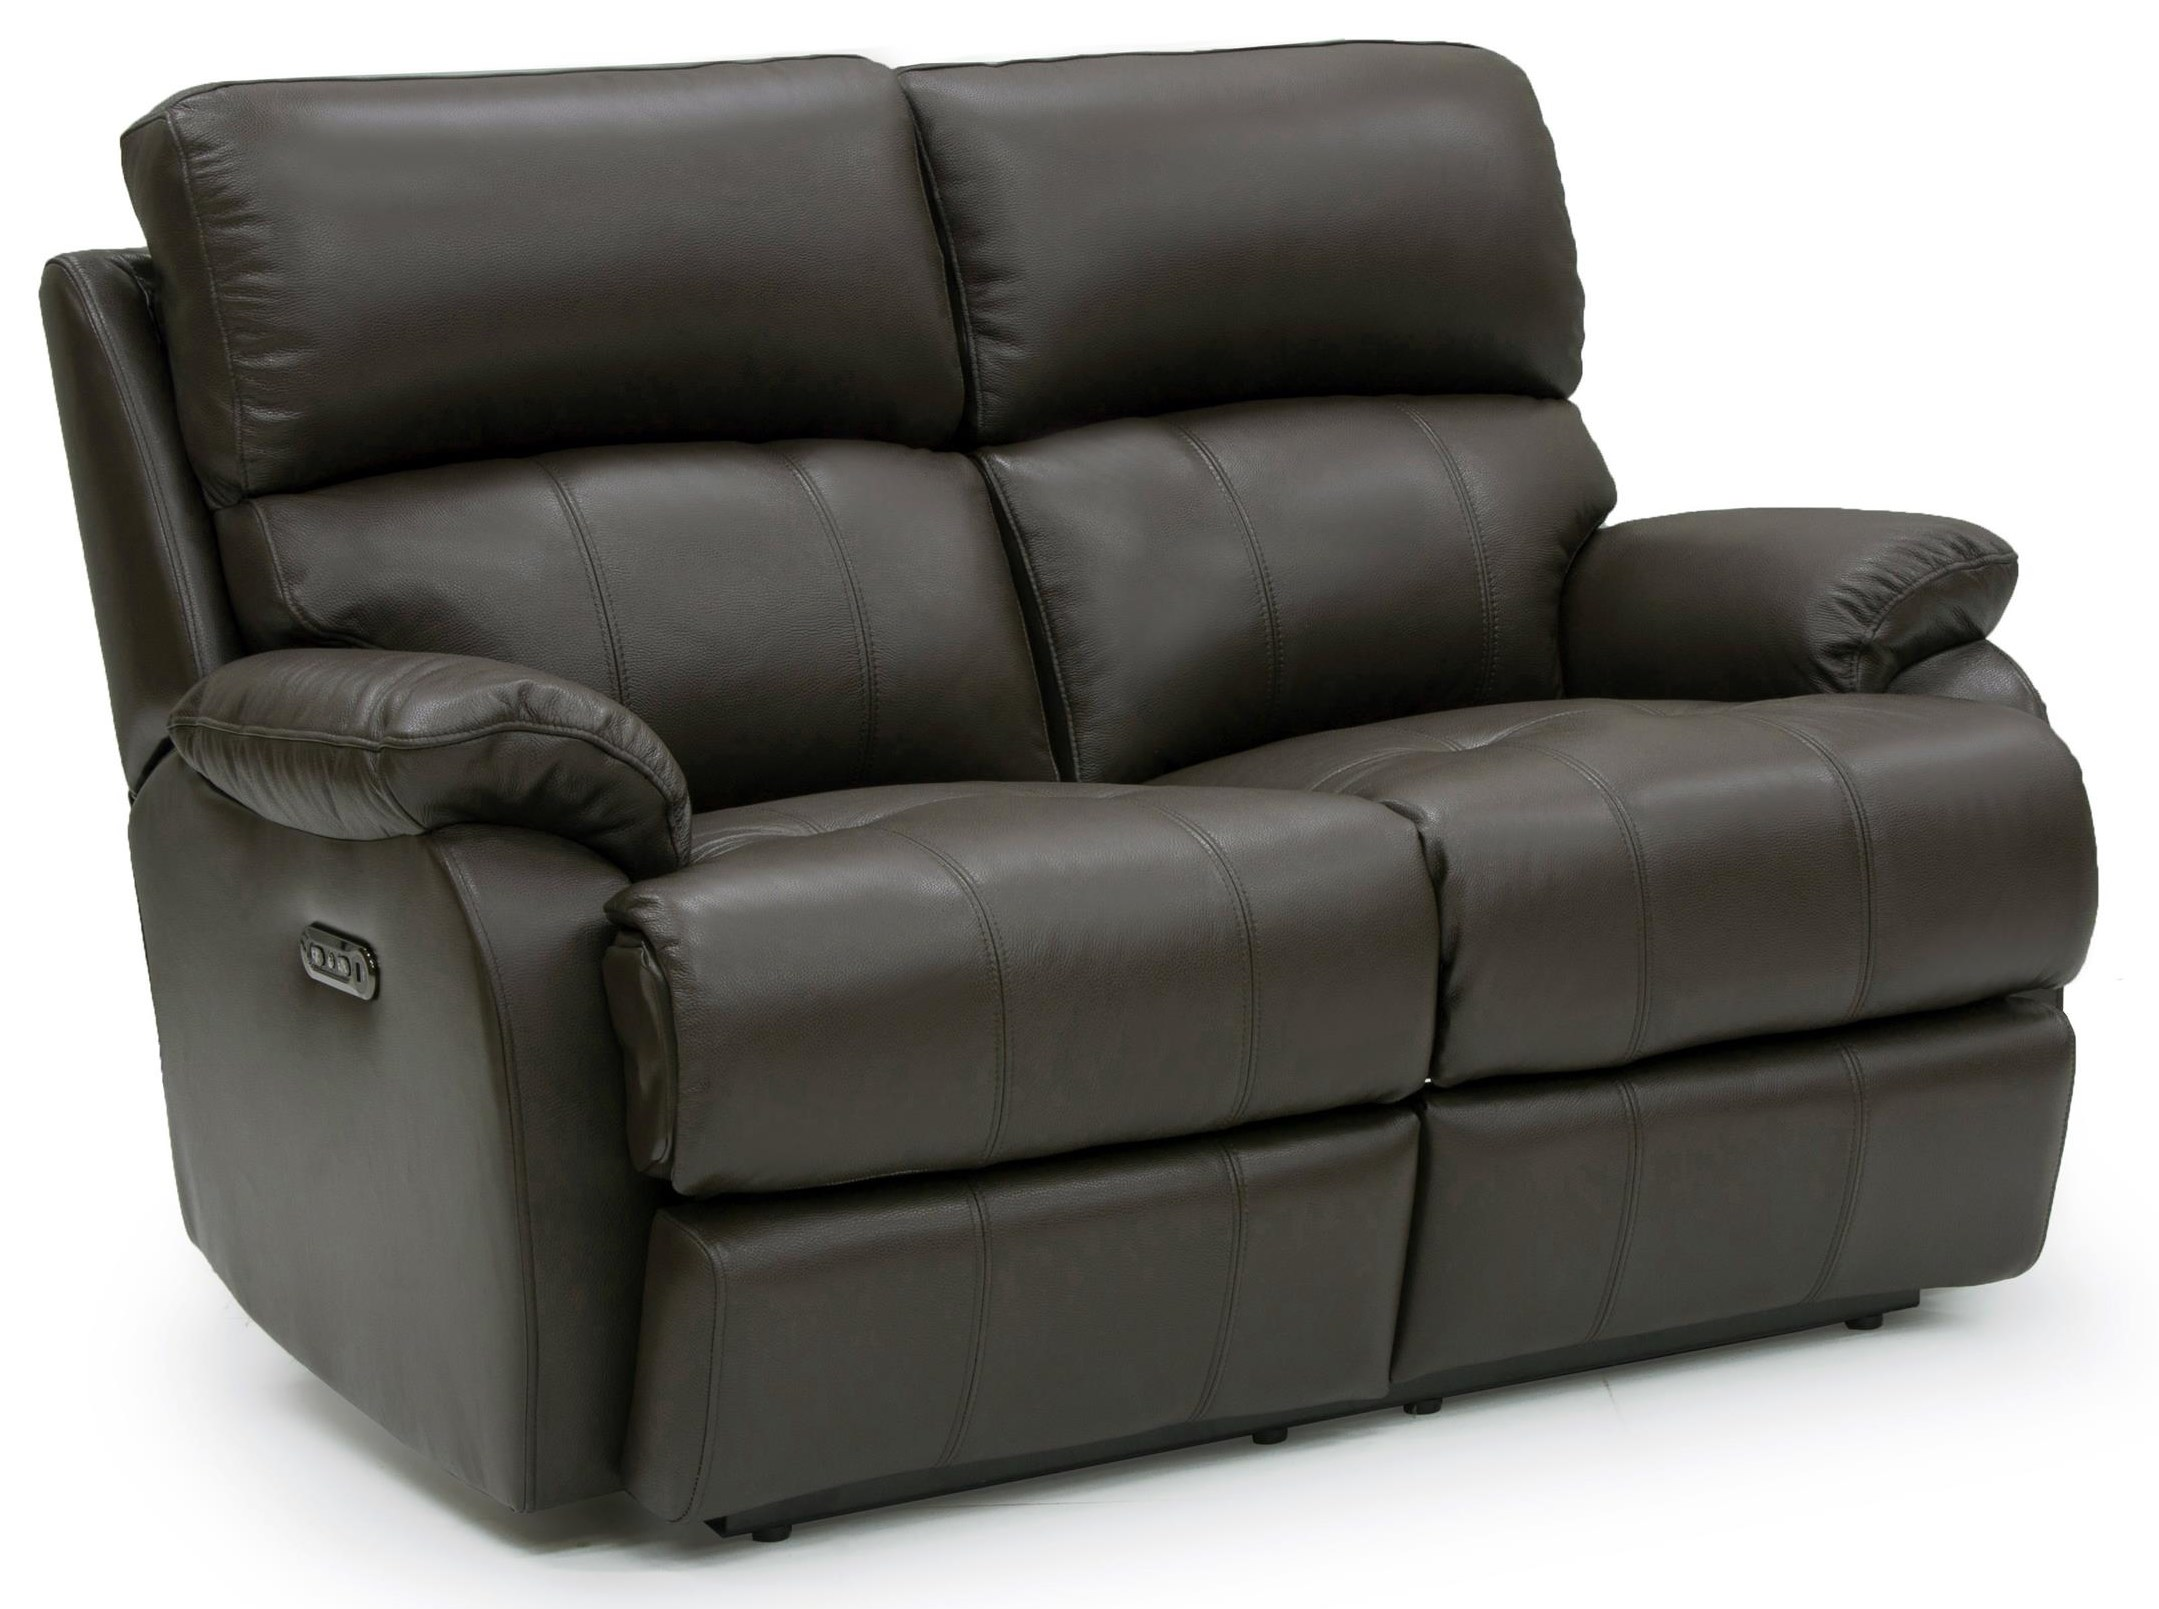 Jacksonville Power Reclining Leather Loveseat at Rotmans